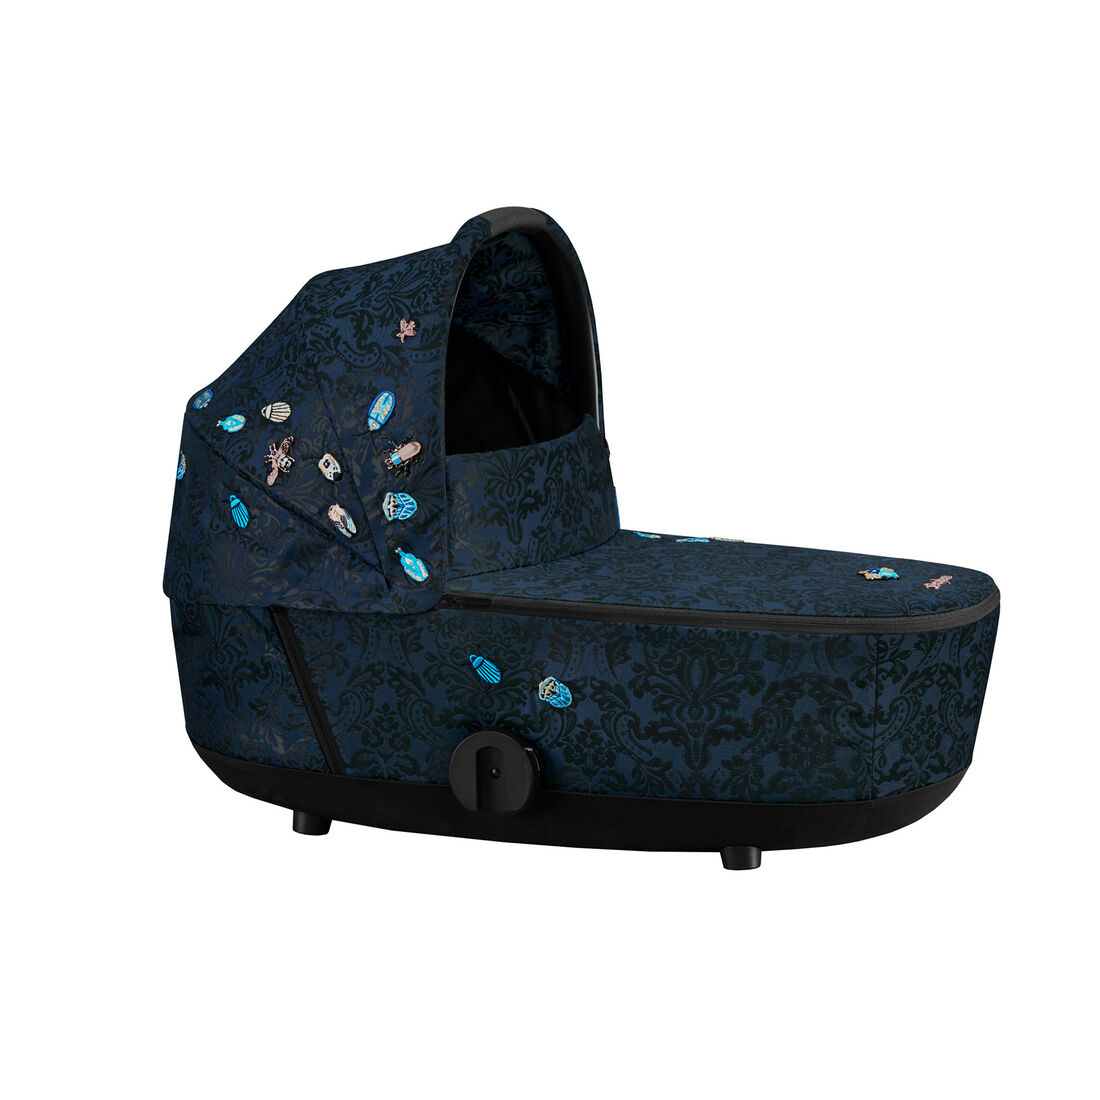 CYBEX Mios Lux Carry Cot - Jewels of Nature in Jewels of Nature large Bild 1